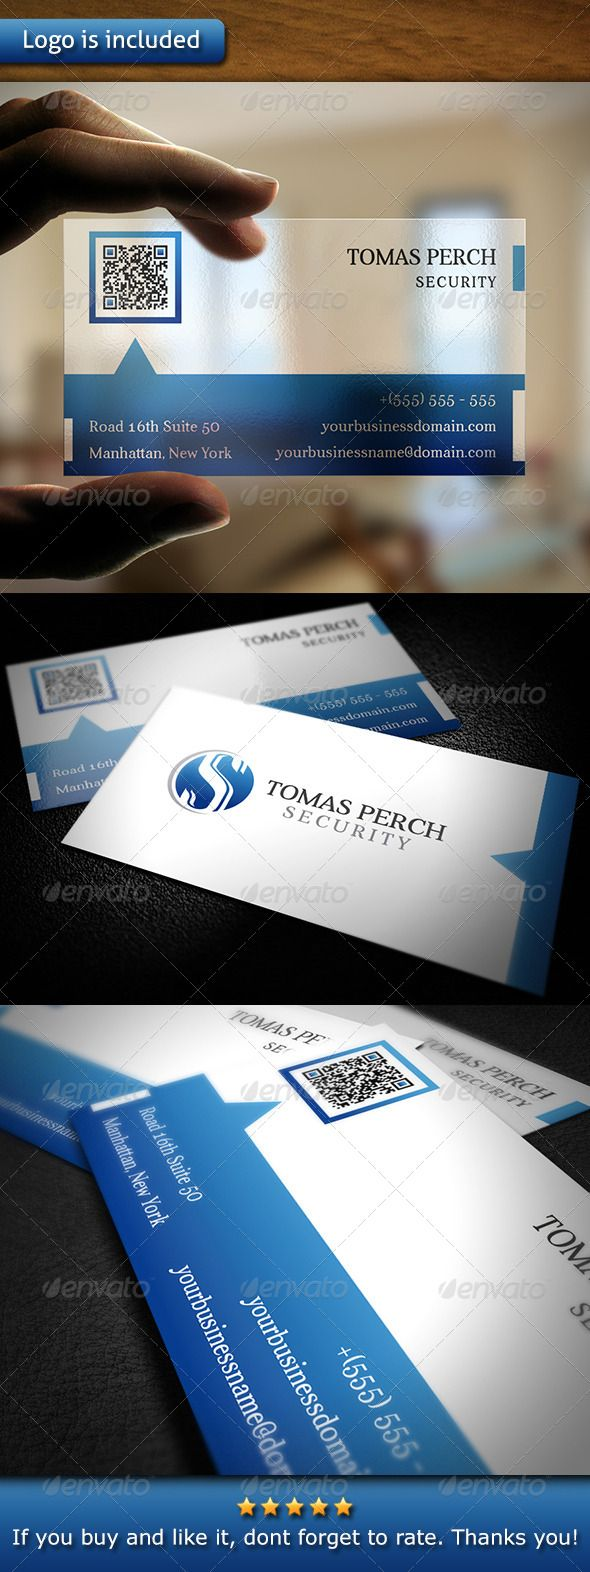 94 best print templates images on pinterest print templates security business card reheart Images